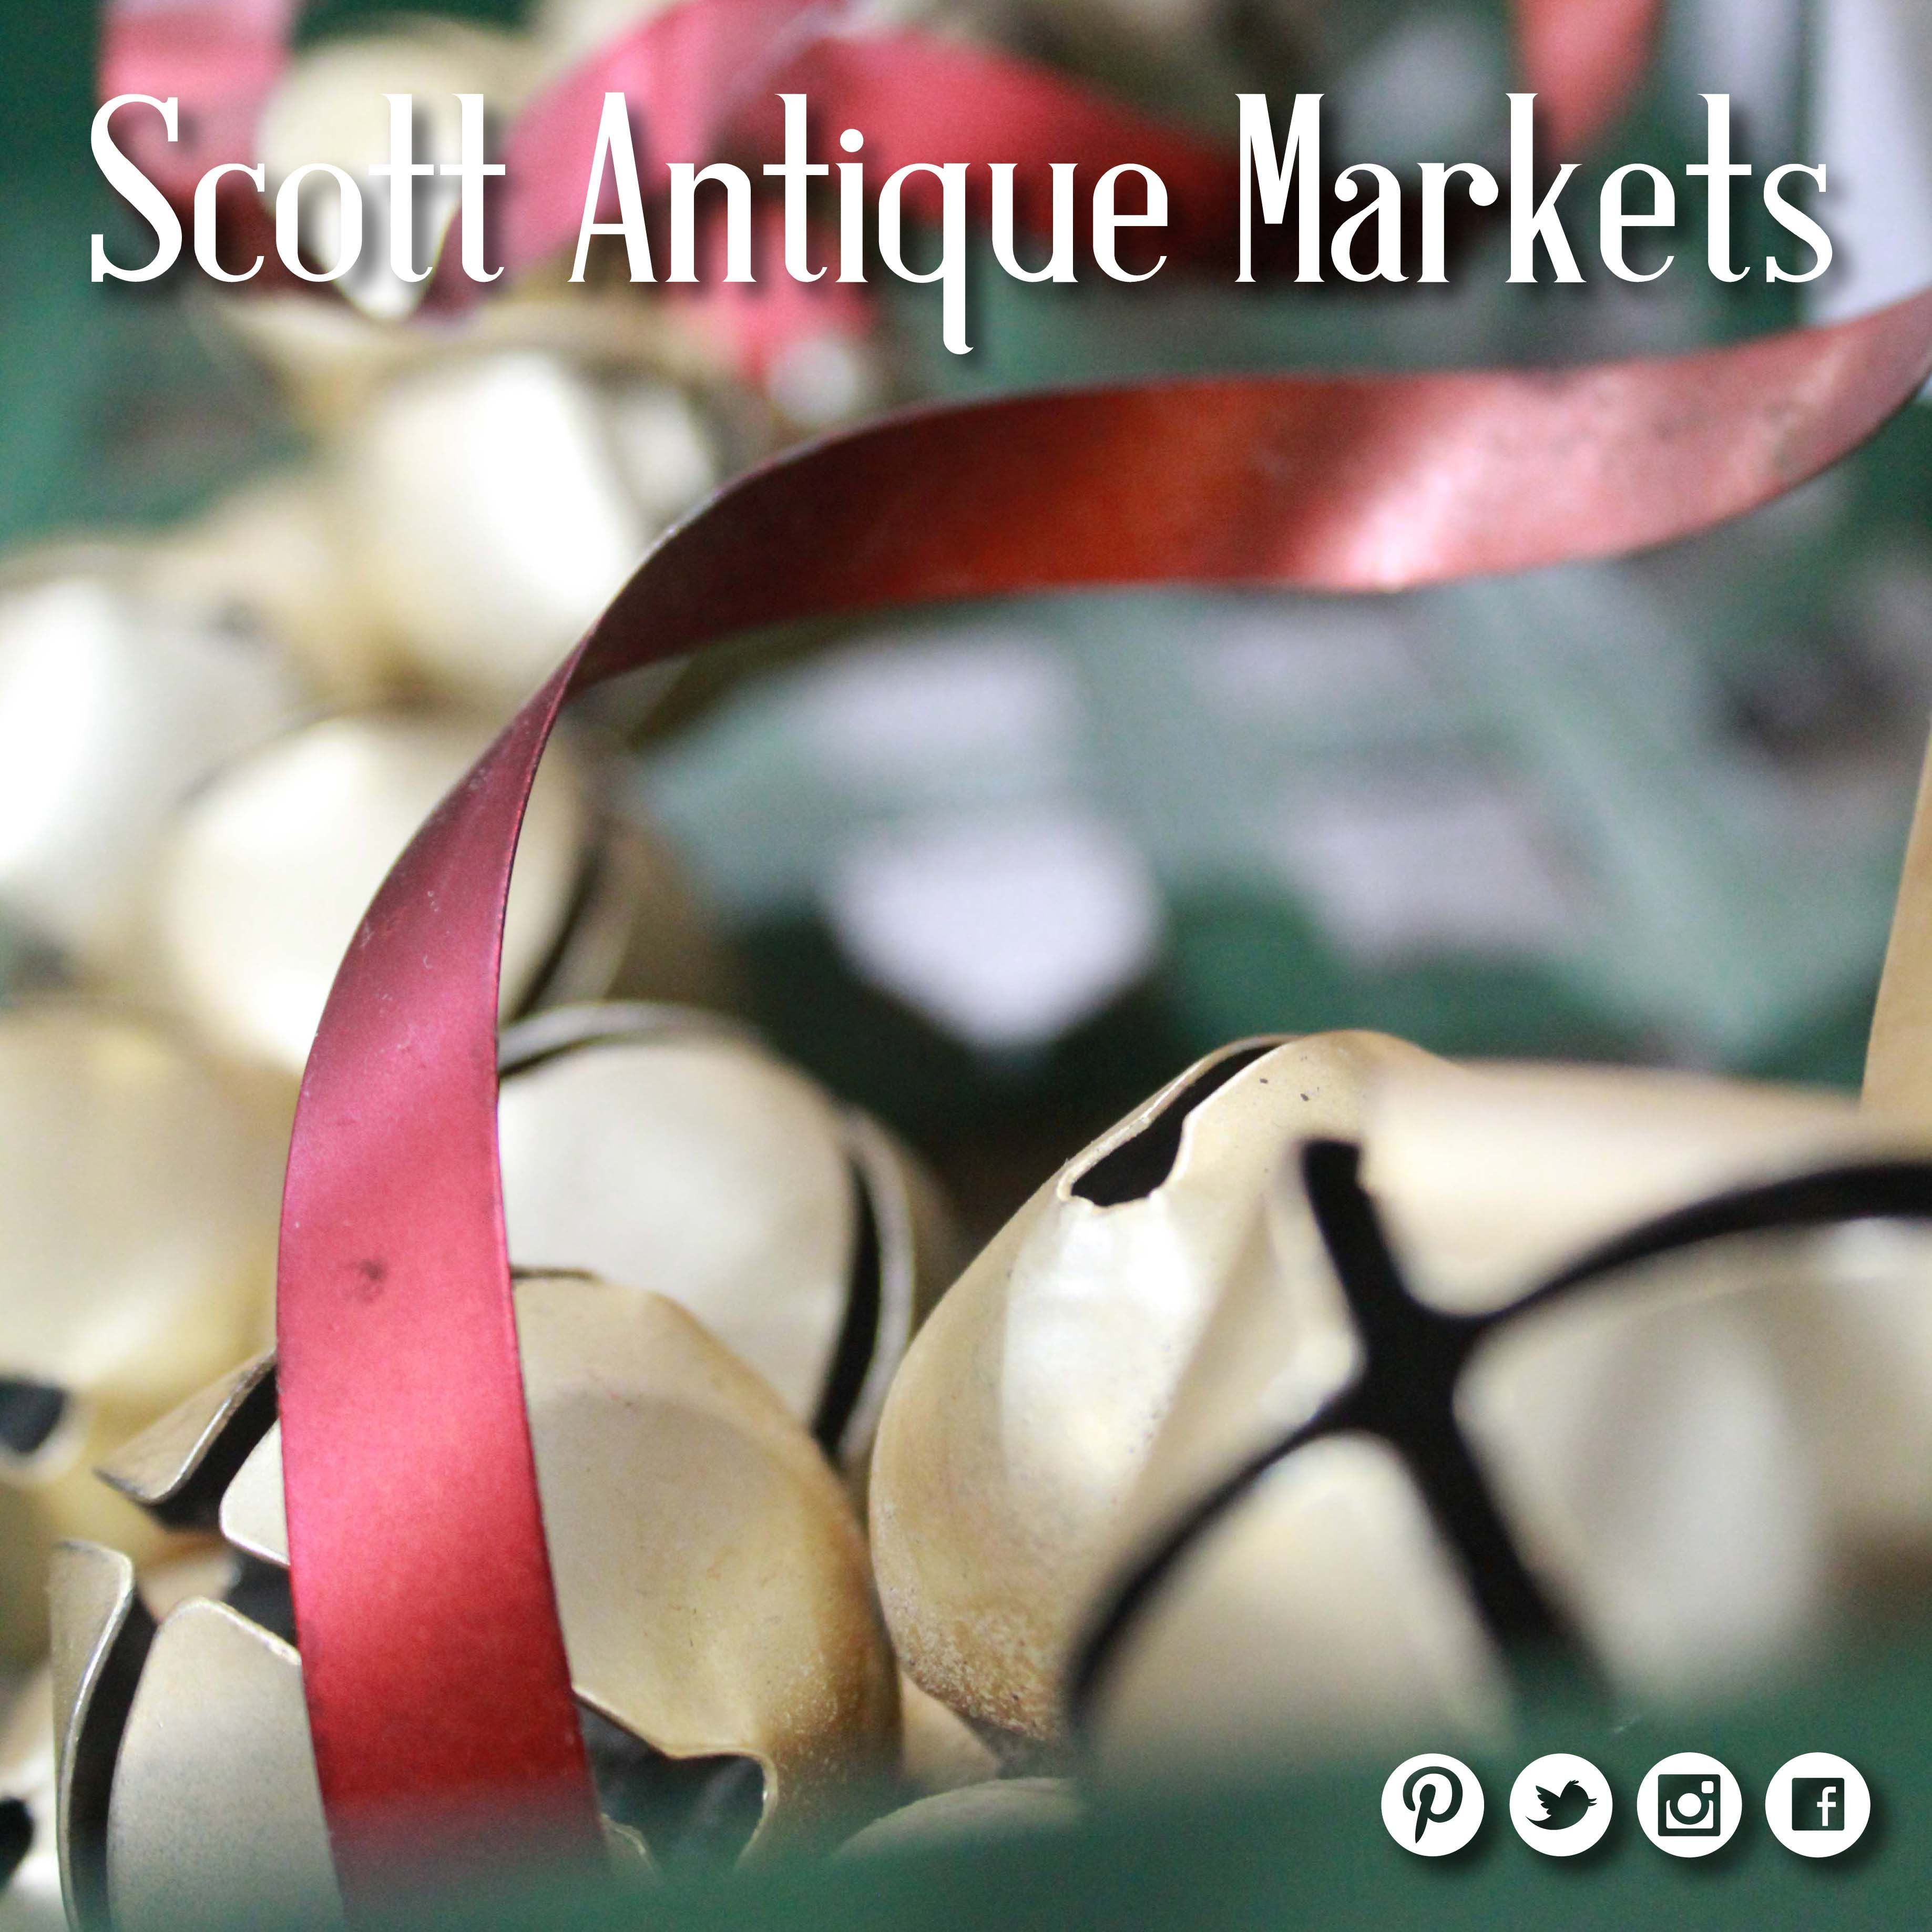 Ring-a-ling, hear them ring. Soon it will be Christmas day. #scottantiquemarkets #jinglebells # ...